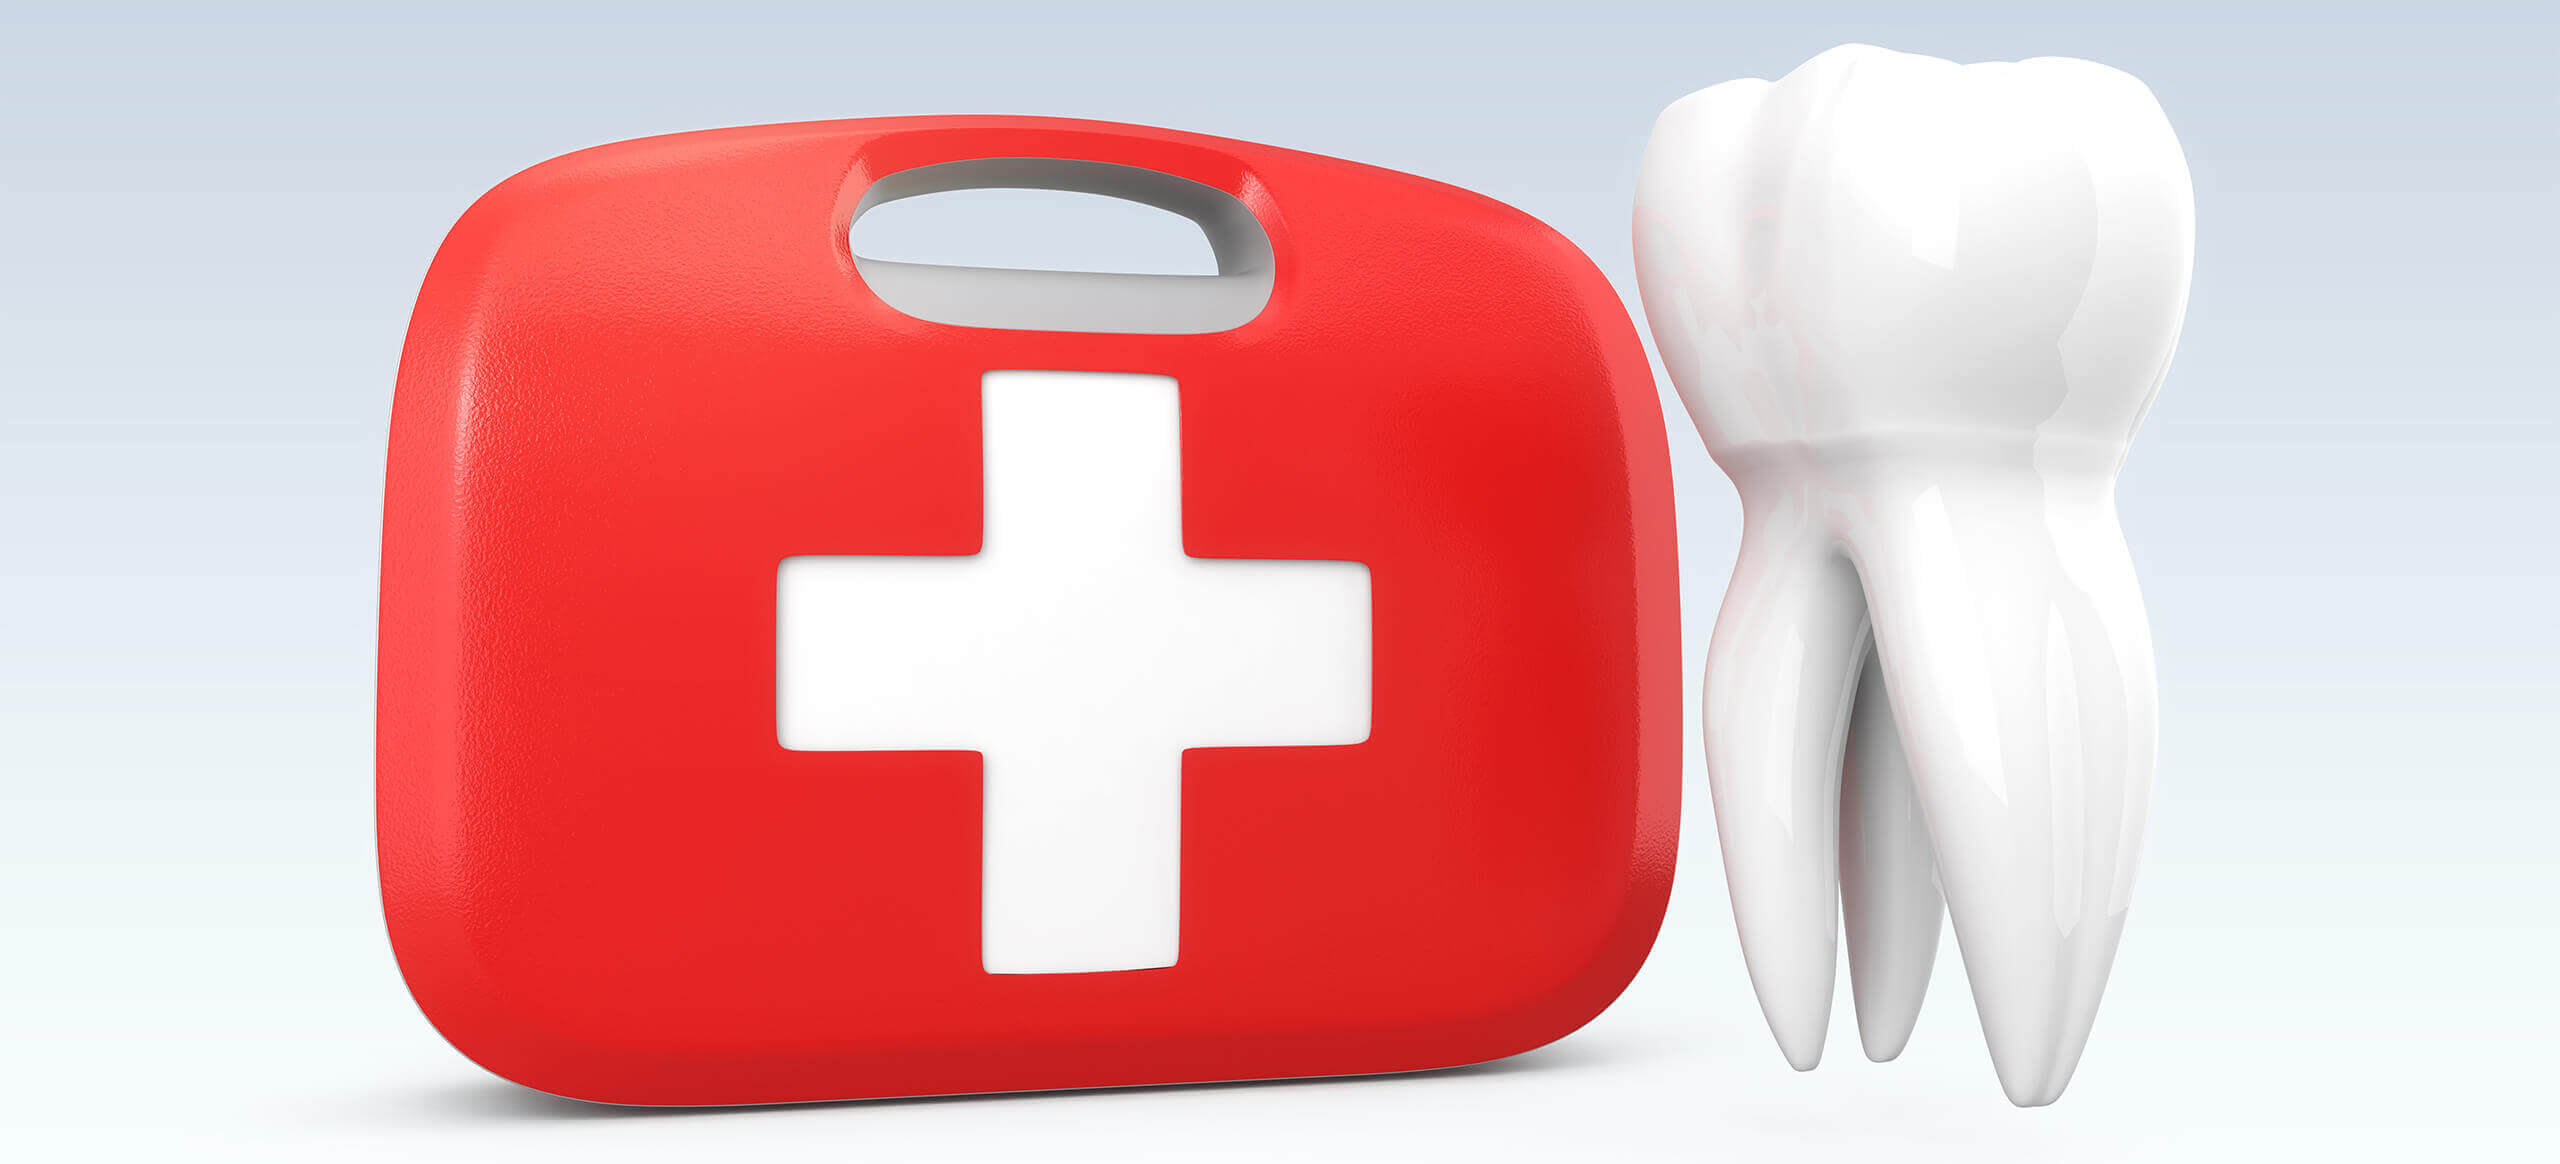 Emergency Dentistry tooth icon